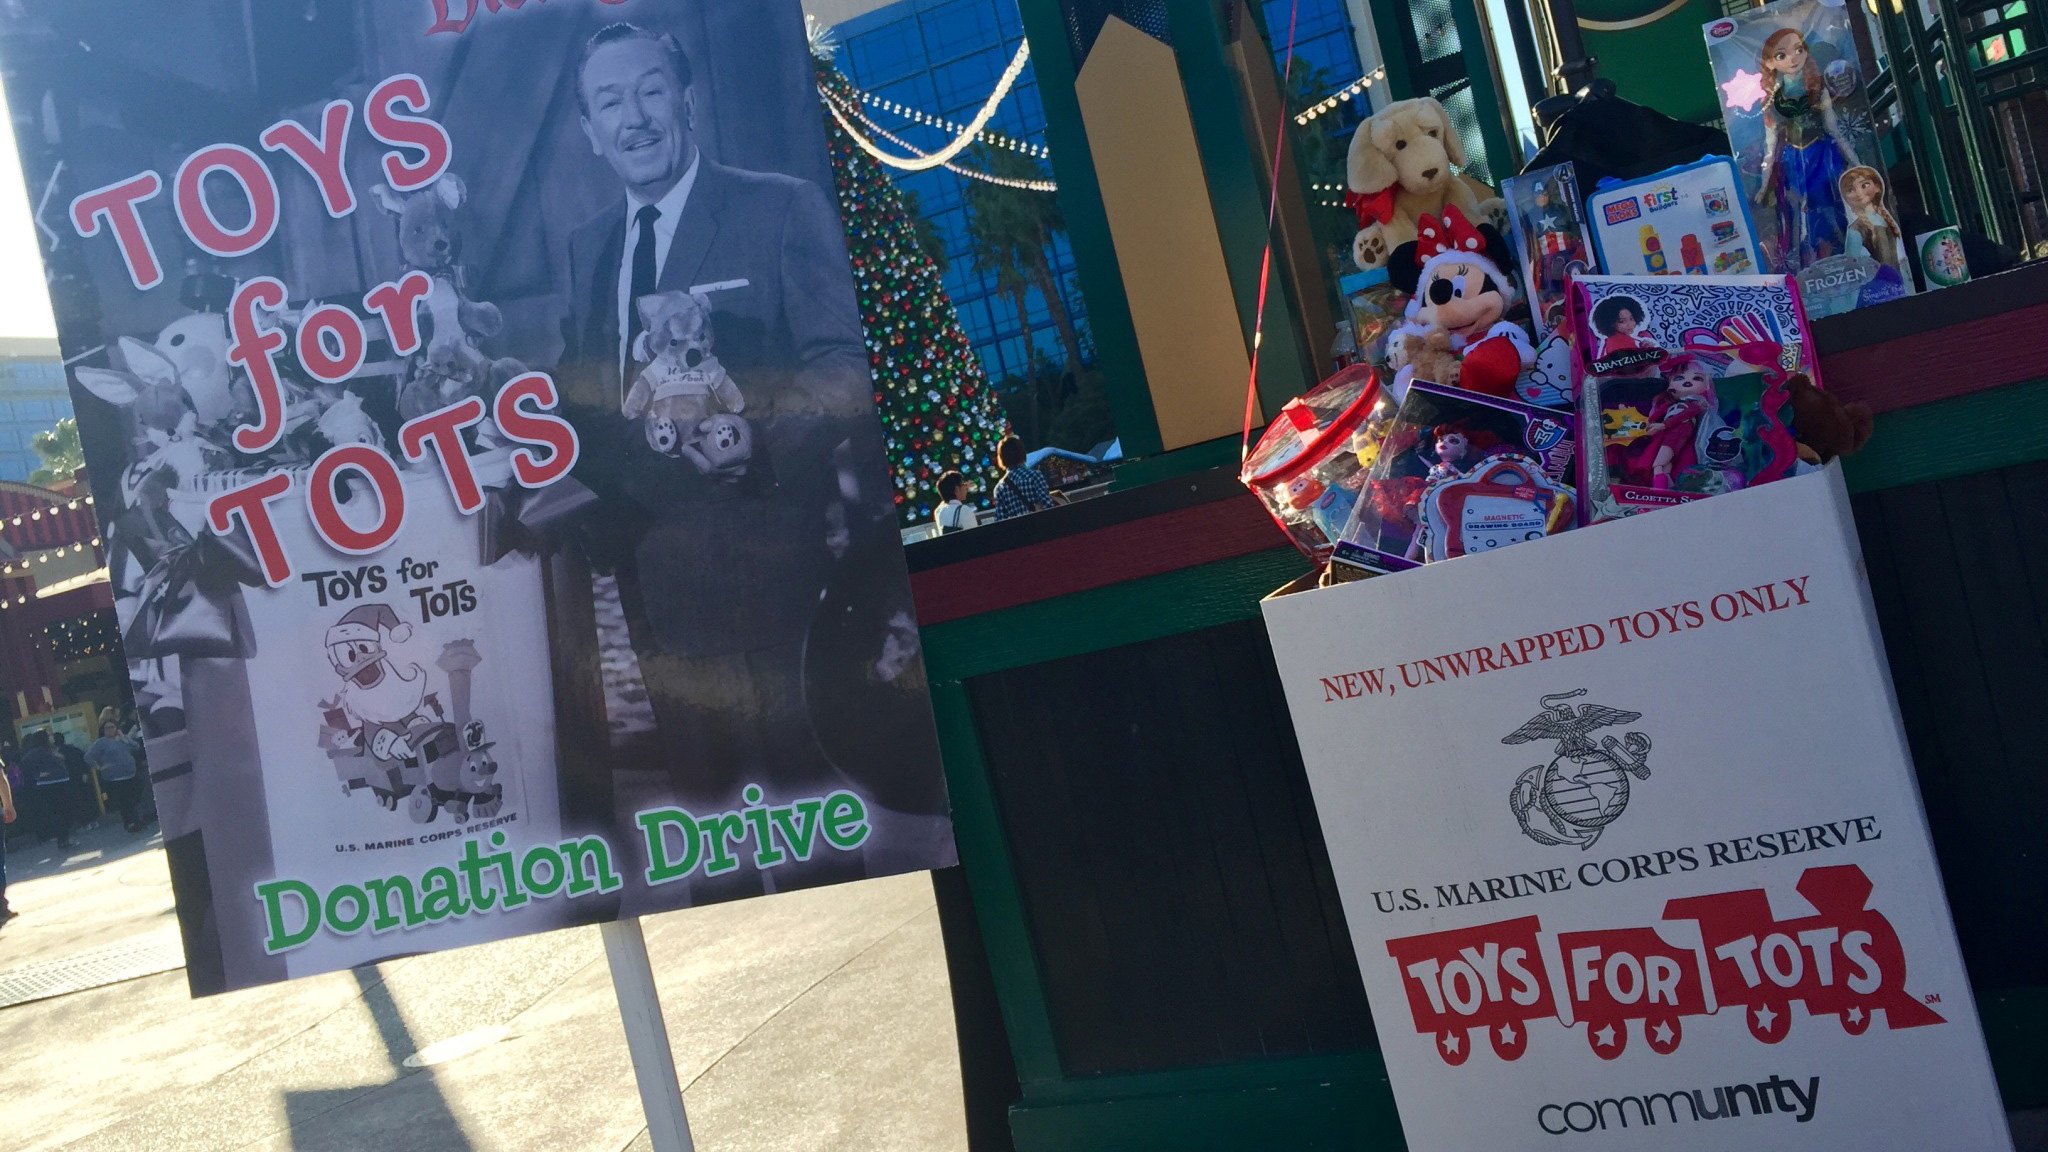 Disney Toys For Tots : Donate to toys for tots at the disneyland resort november